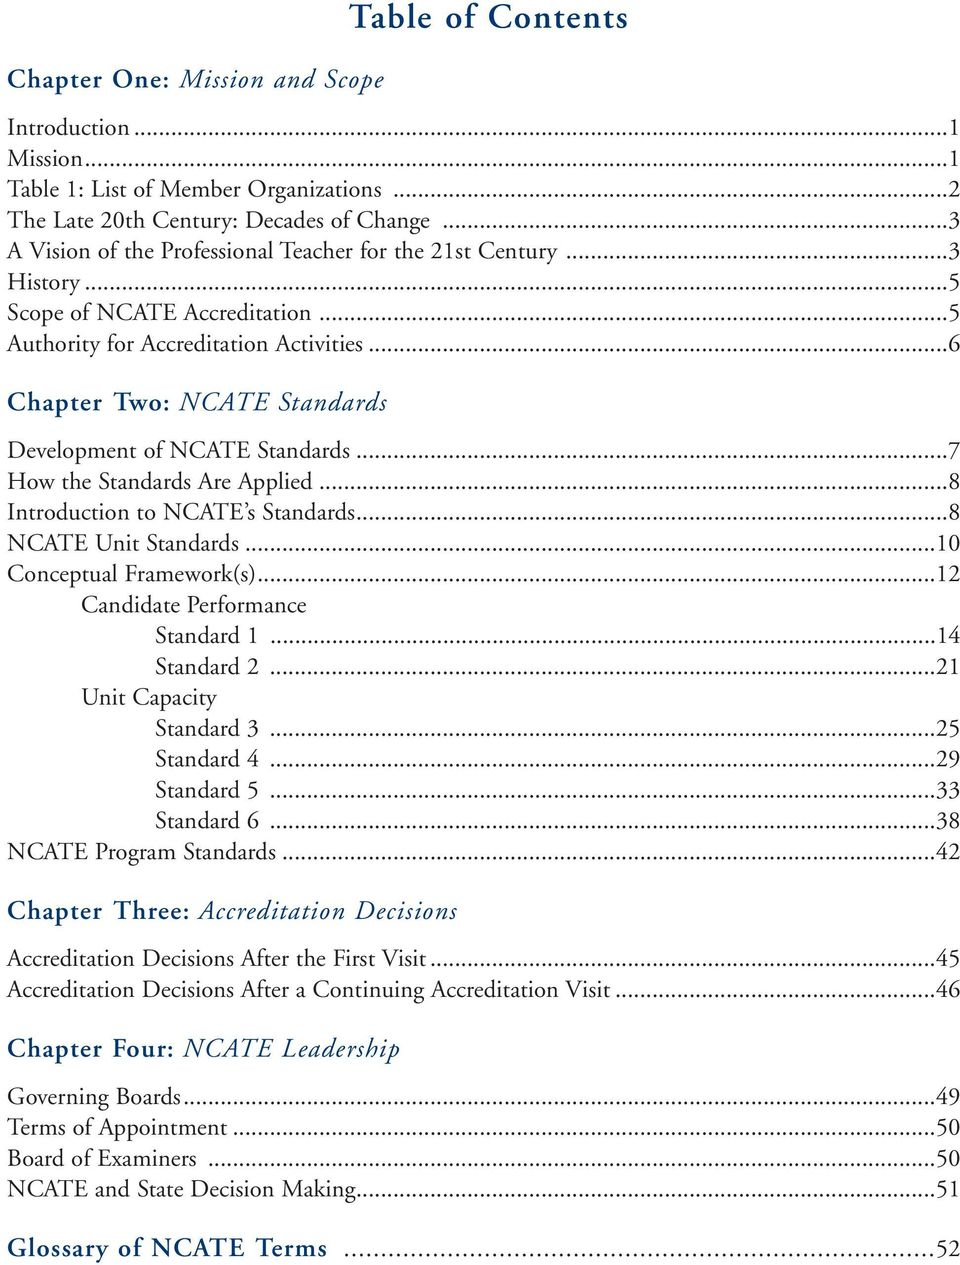 ..6 Chapter Two: NCATE Standards Development of NCATE Standards...7 How the Standards Are Applied...8 Introduction to NCATE s Standards...8 NCATE Unit Standards...10 Conceptual Framework(s).